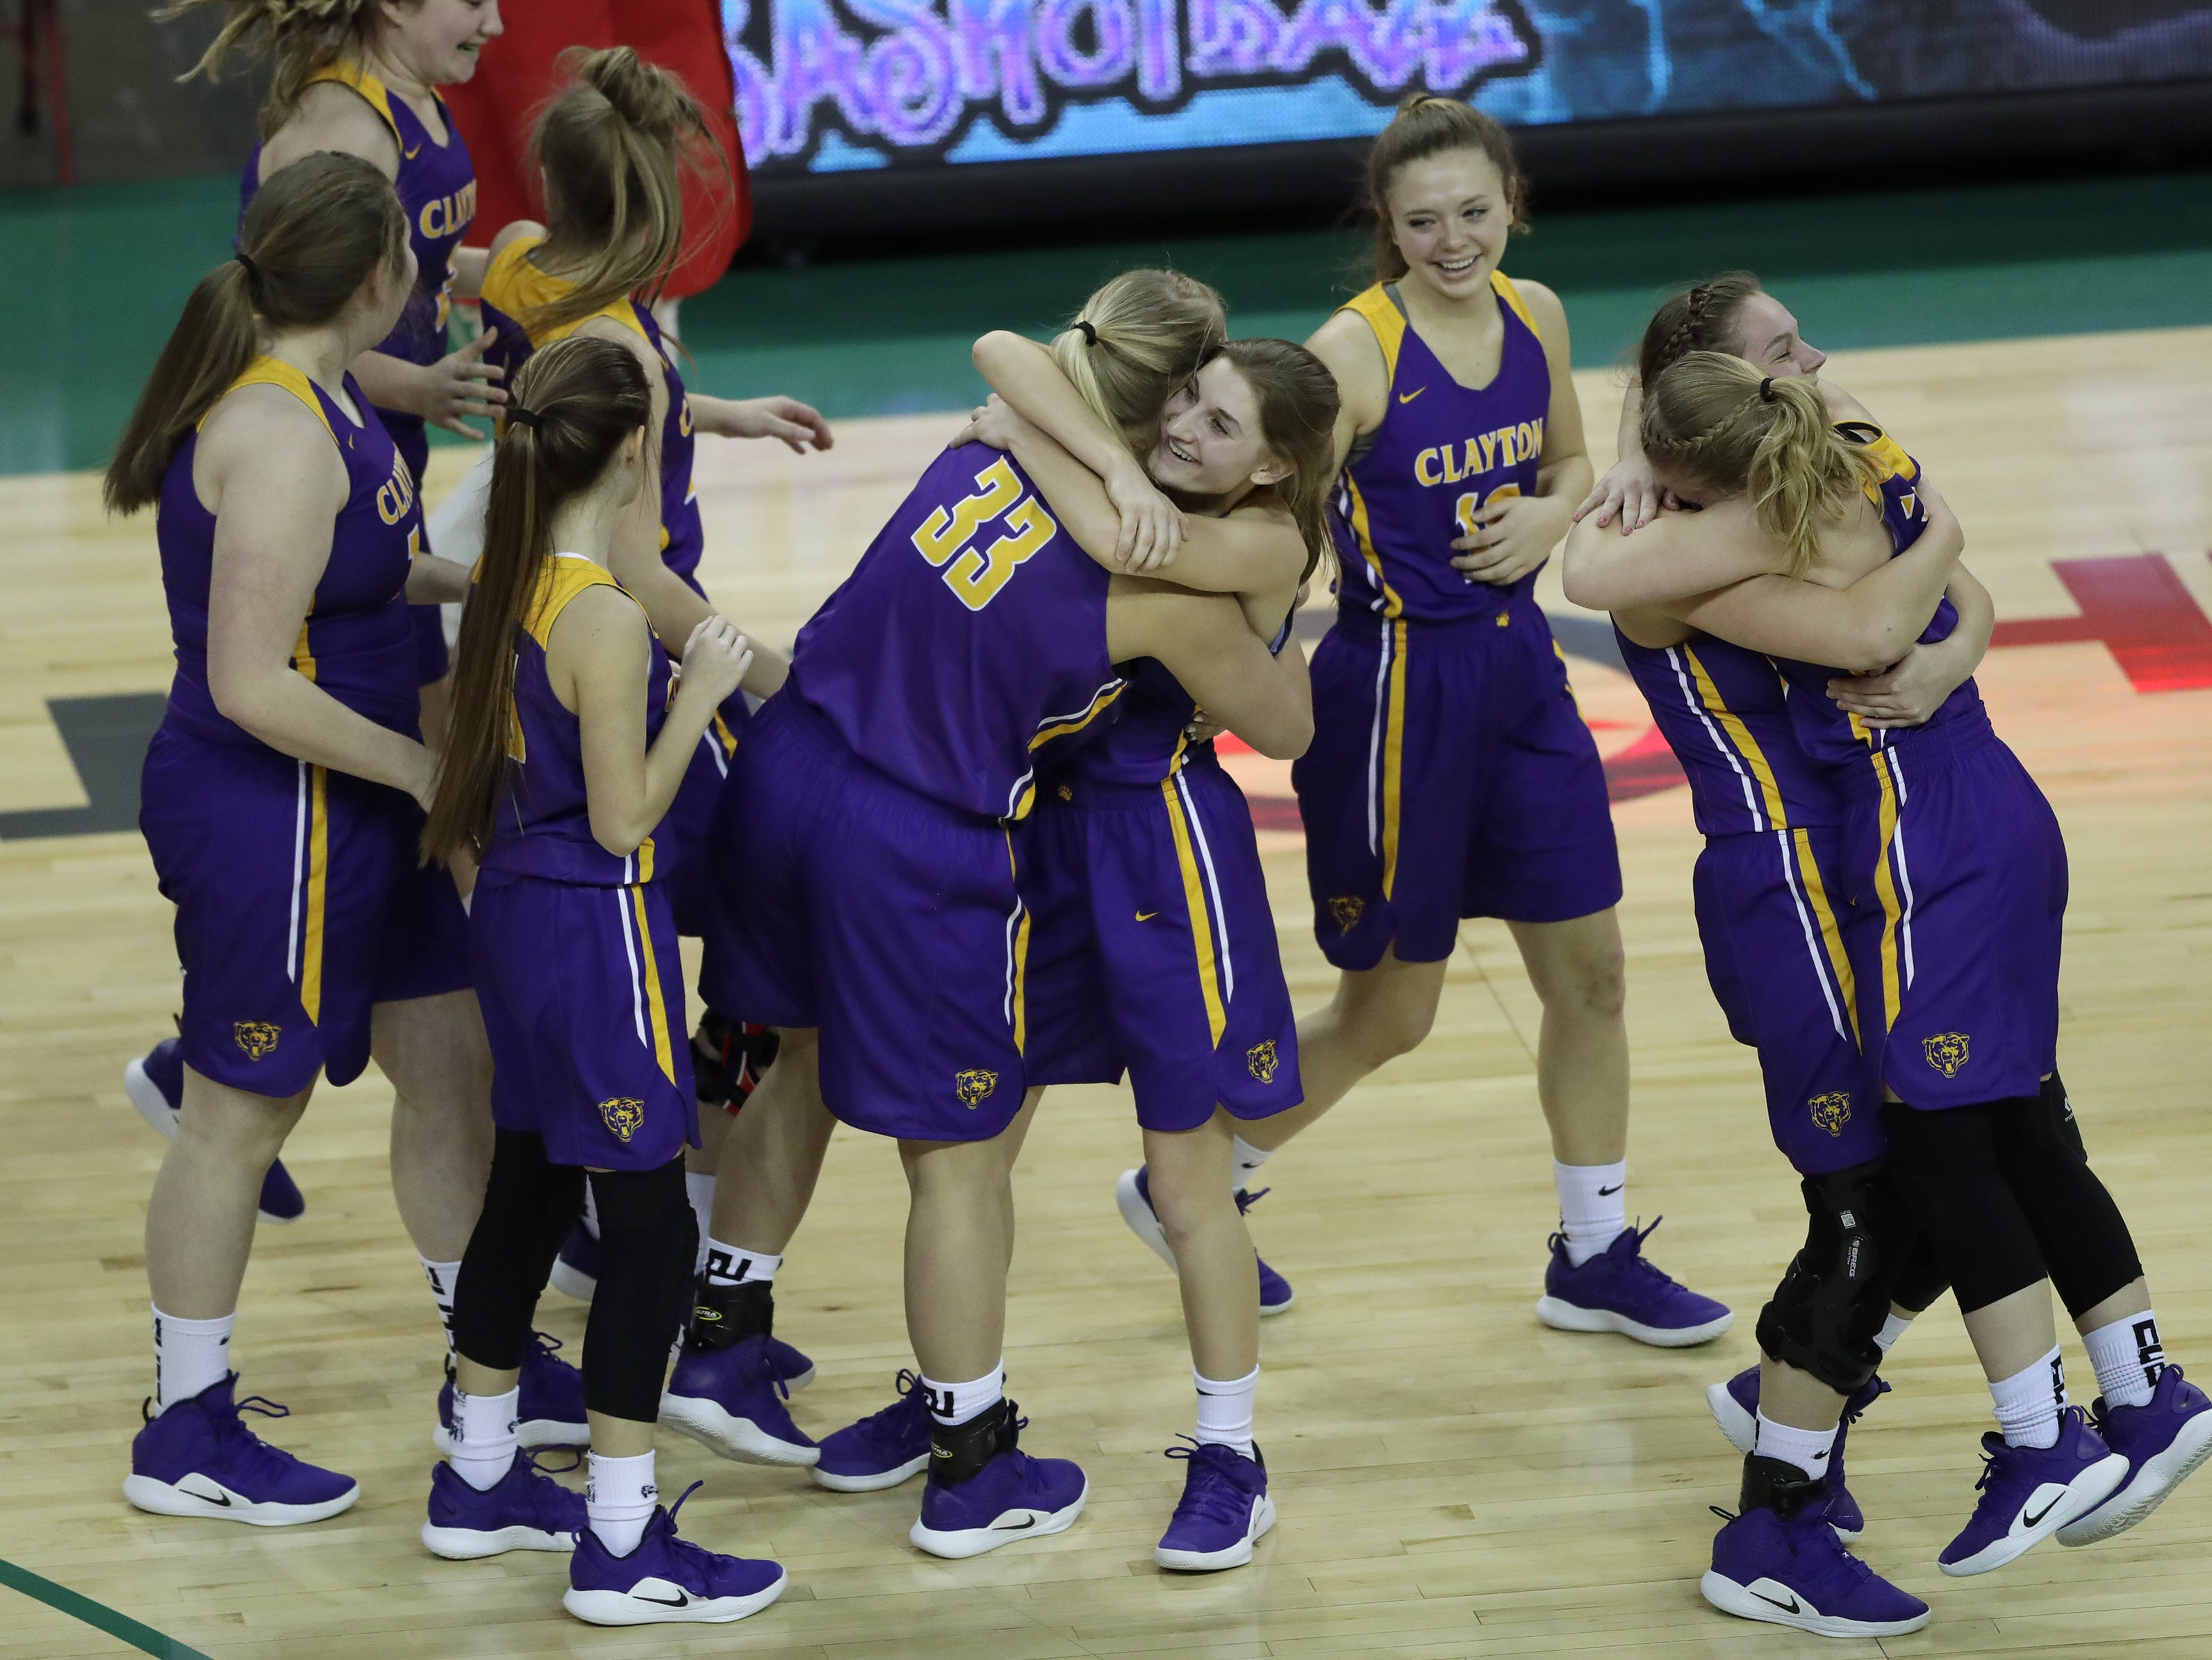 Clayton celebrates their victory against Wausau Newman Catholic during their Division 5 semifinal game at the WIAA girls state basketball tournament Friday, March 8, 2019, at the Resch Center in Ashwaubenon, Wis.  Dan Powers/USA TODAY NETWORK-Wisconsin